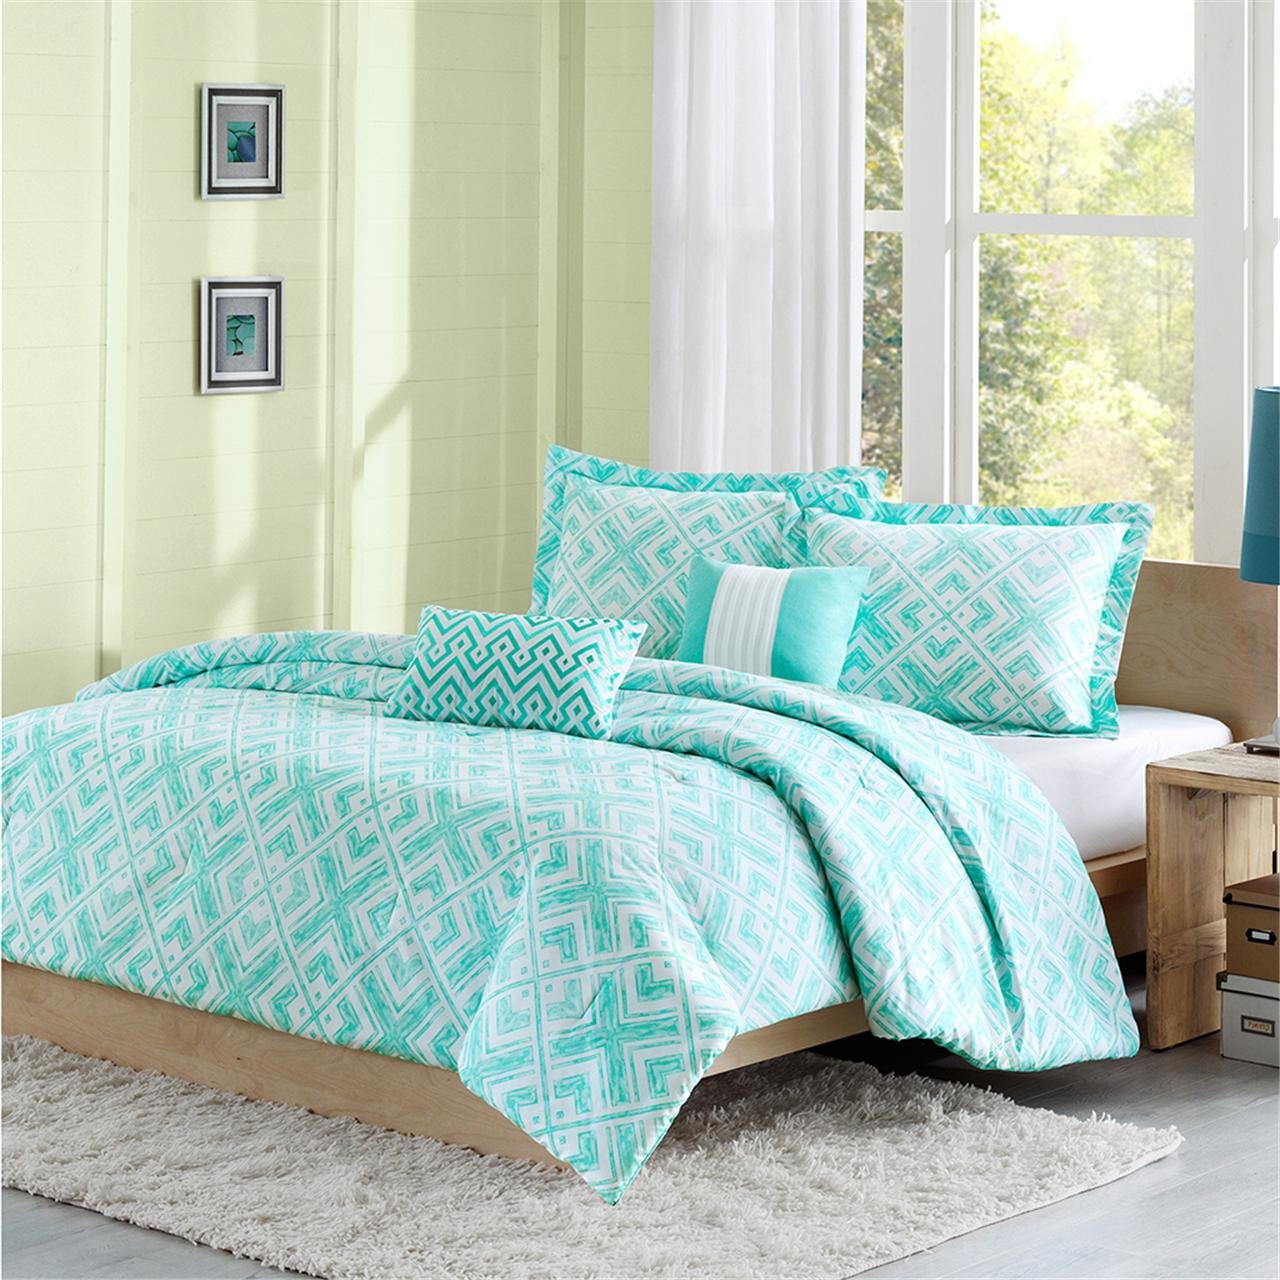 Amazon.com: Intelligent Design Laurent 5 Piece Comforter Set, Full ... : teal quilt set - Adamdwight.com